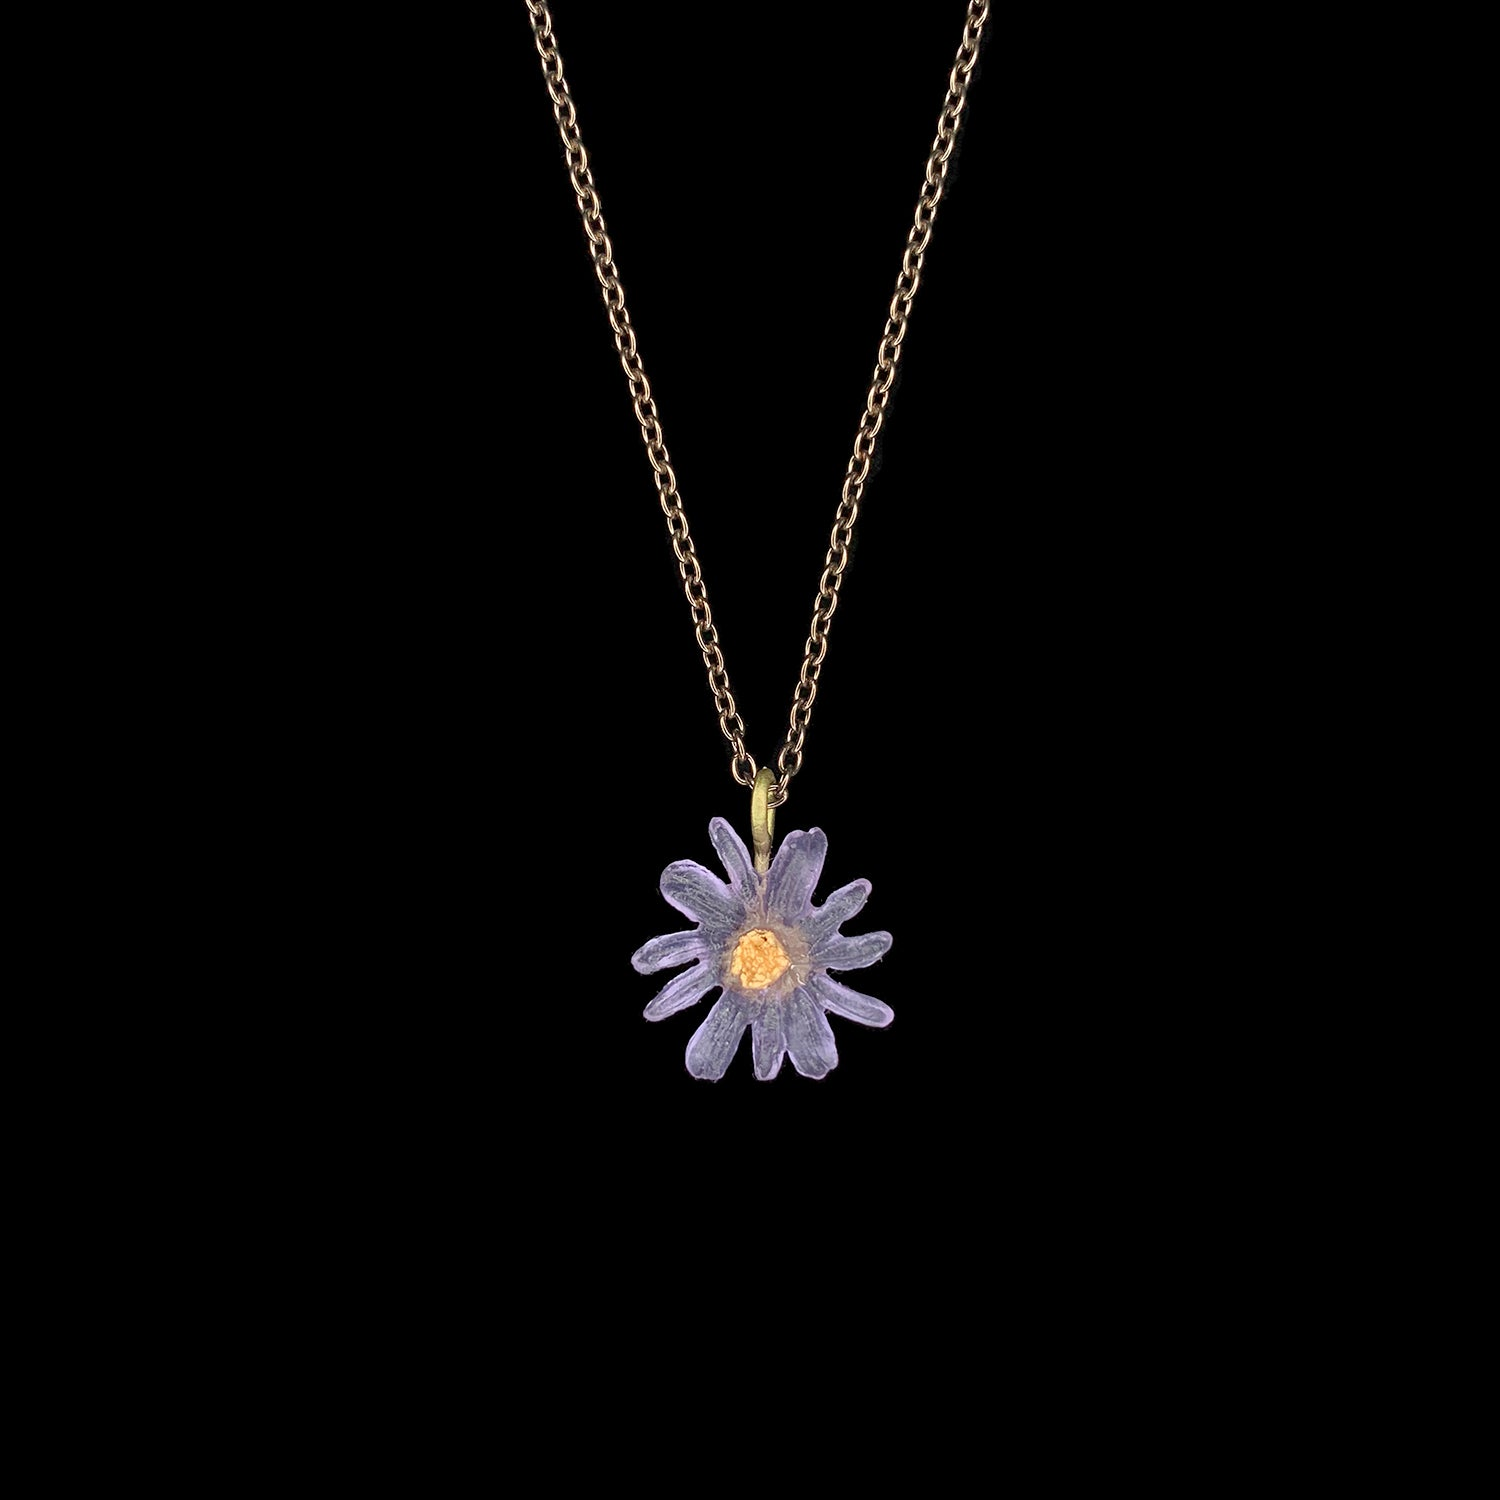 Aster Pendant - Single Flower